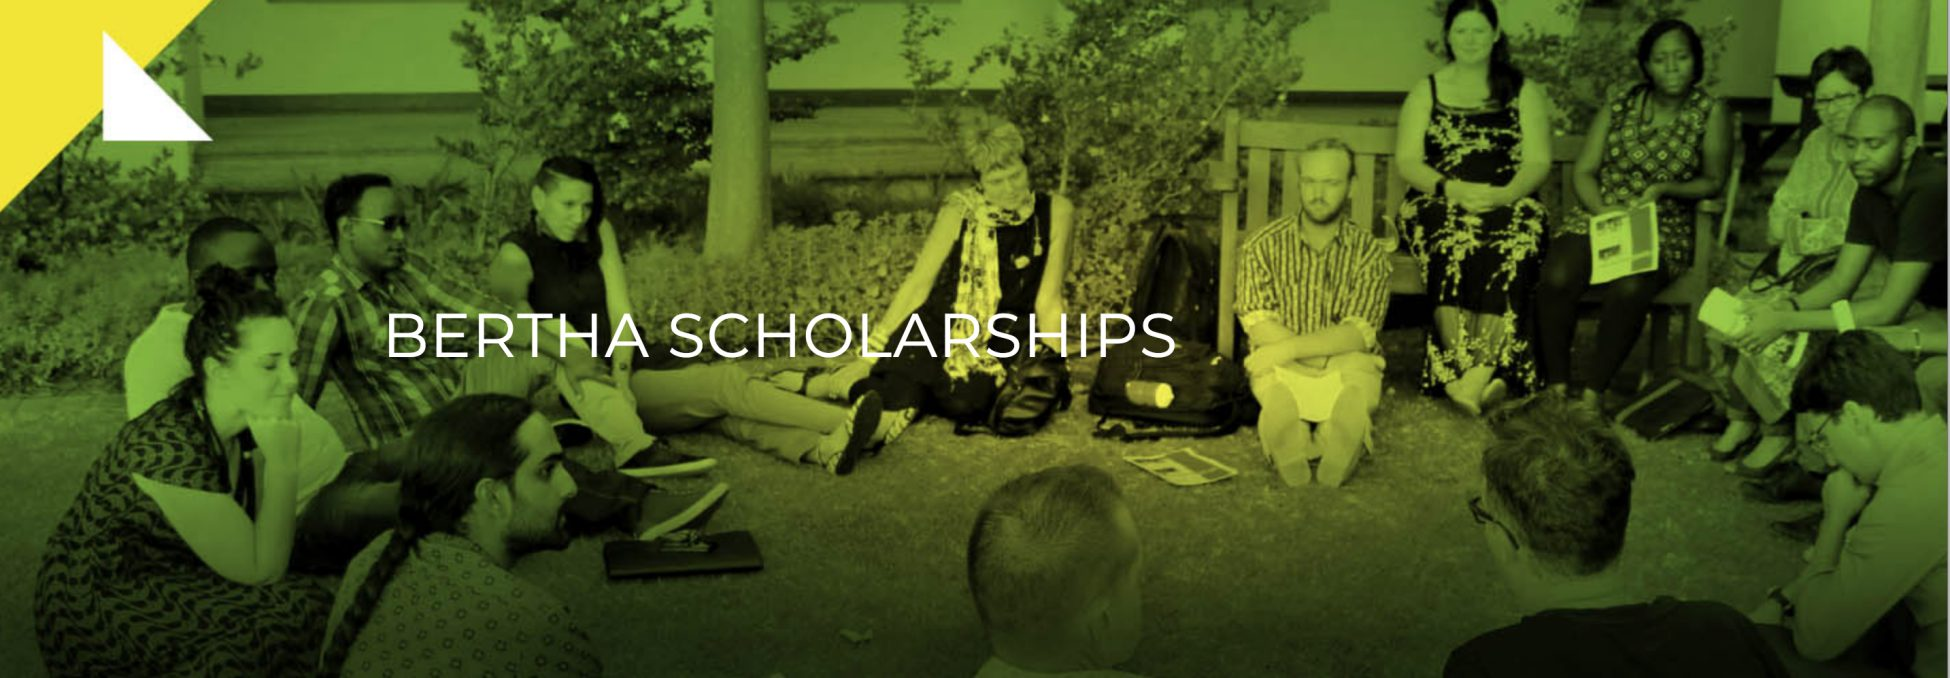 Bertha Scholarships